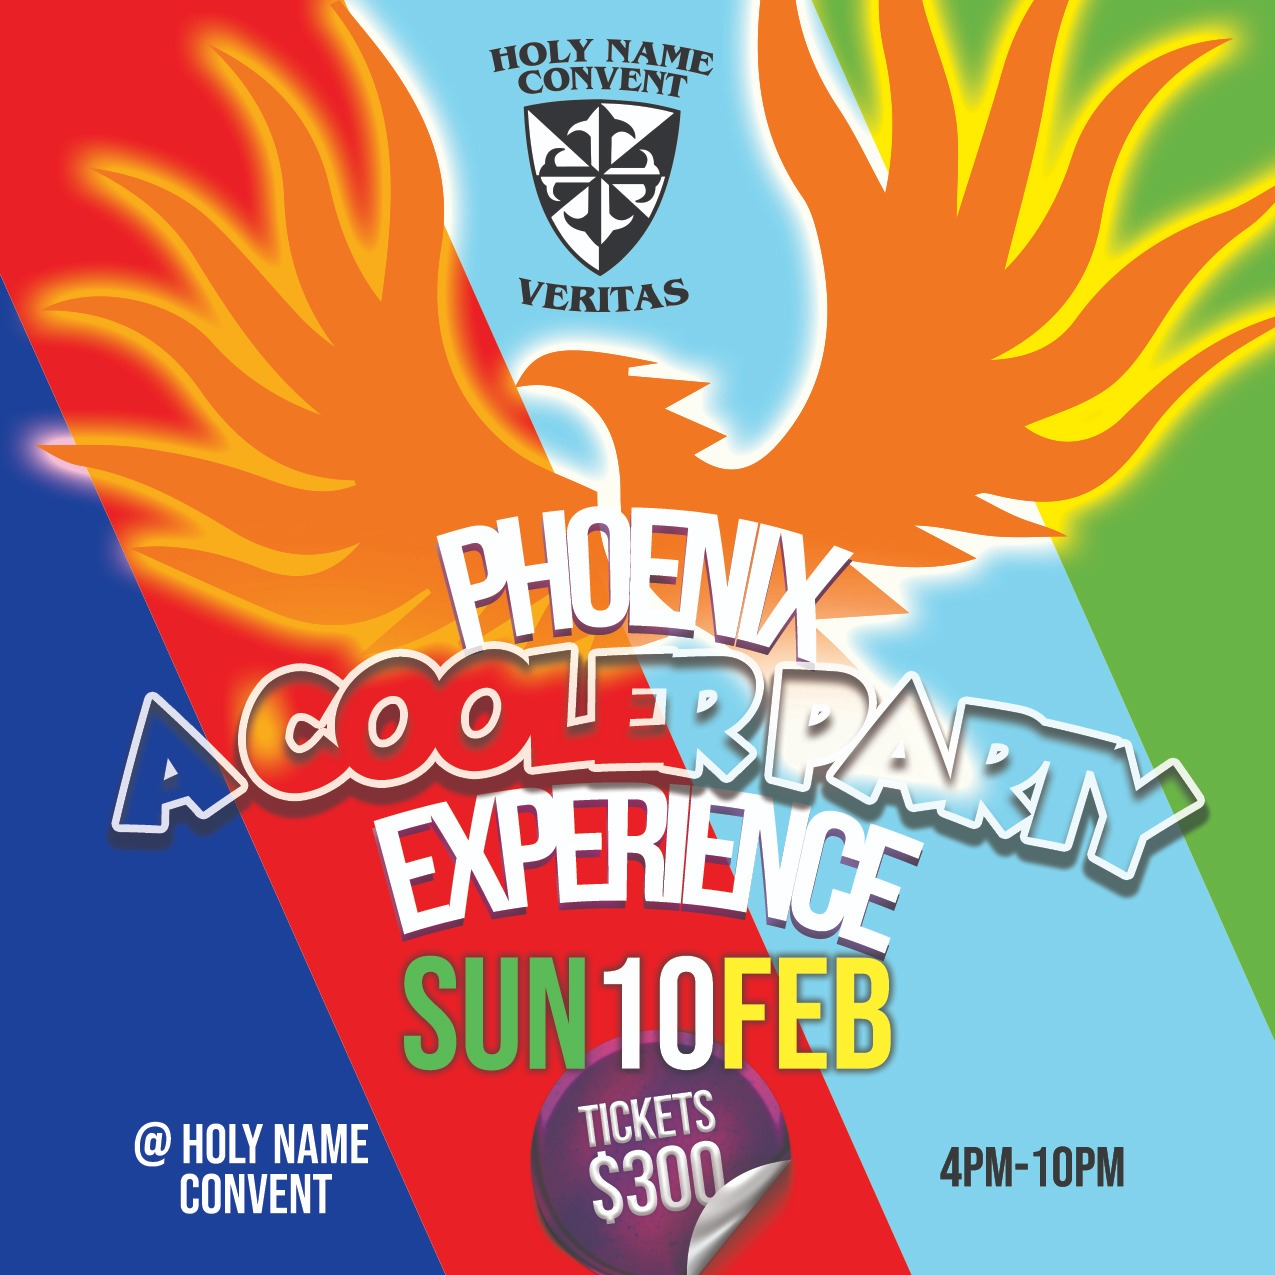 Holy Name Convent, Port of Spain Presents Phoenix - A Cooler Party Experience.